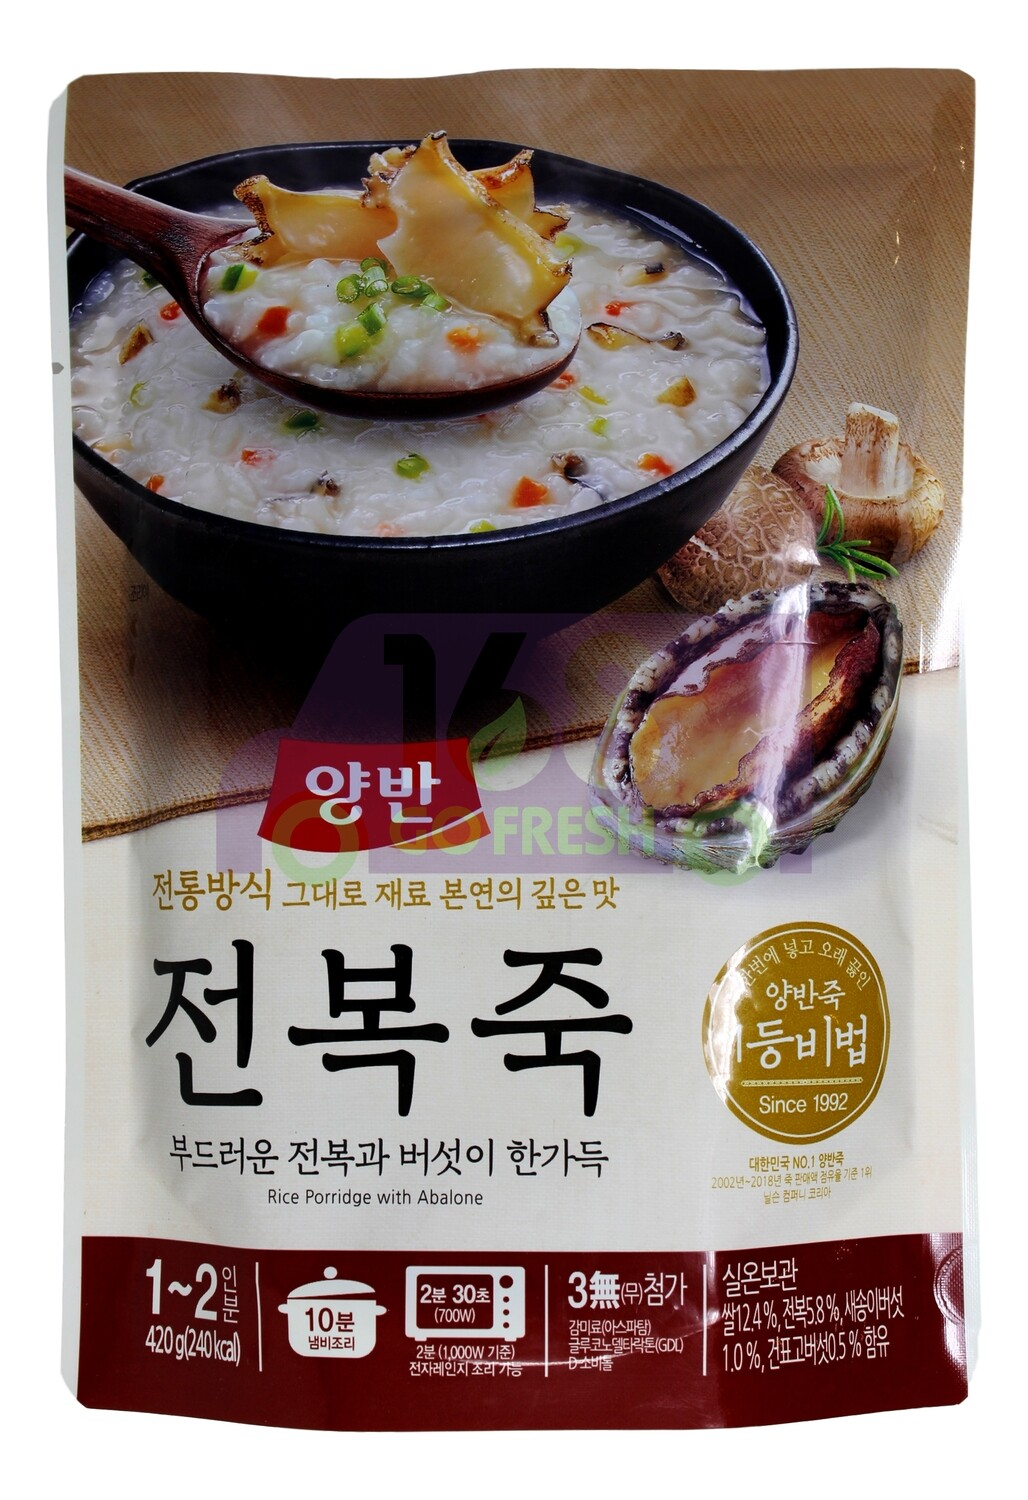 RICE PORRIDGE WITH ABALONE 韩国产 即食鲍鱼粥(420G)